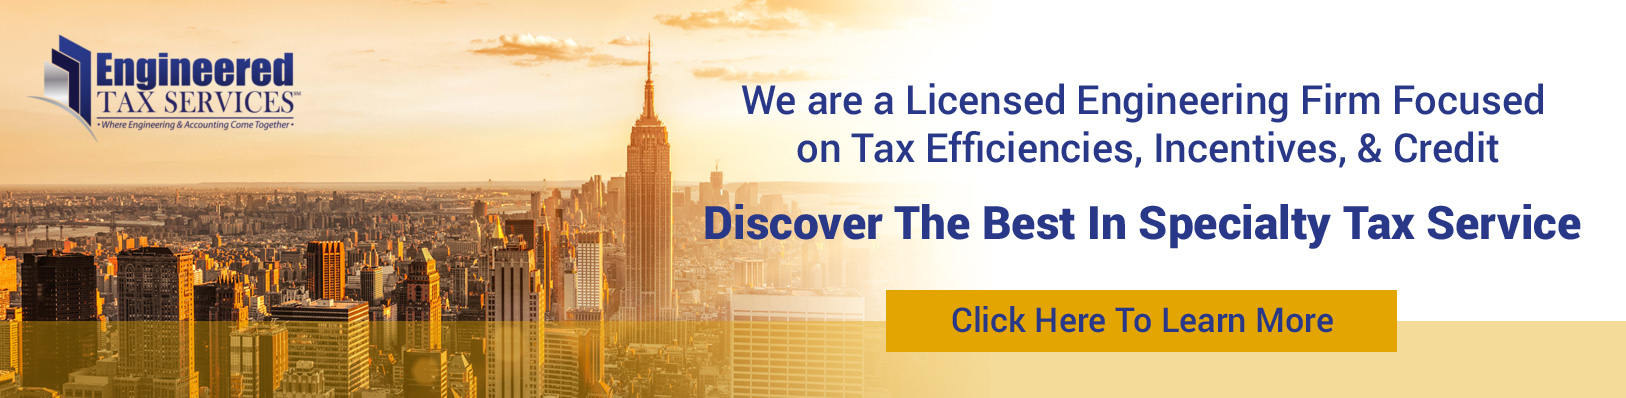 Engineered Tax Service